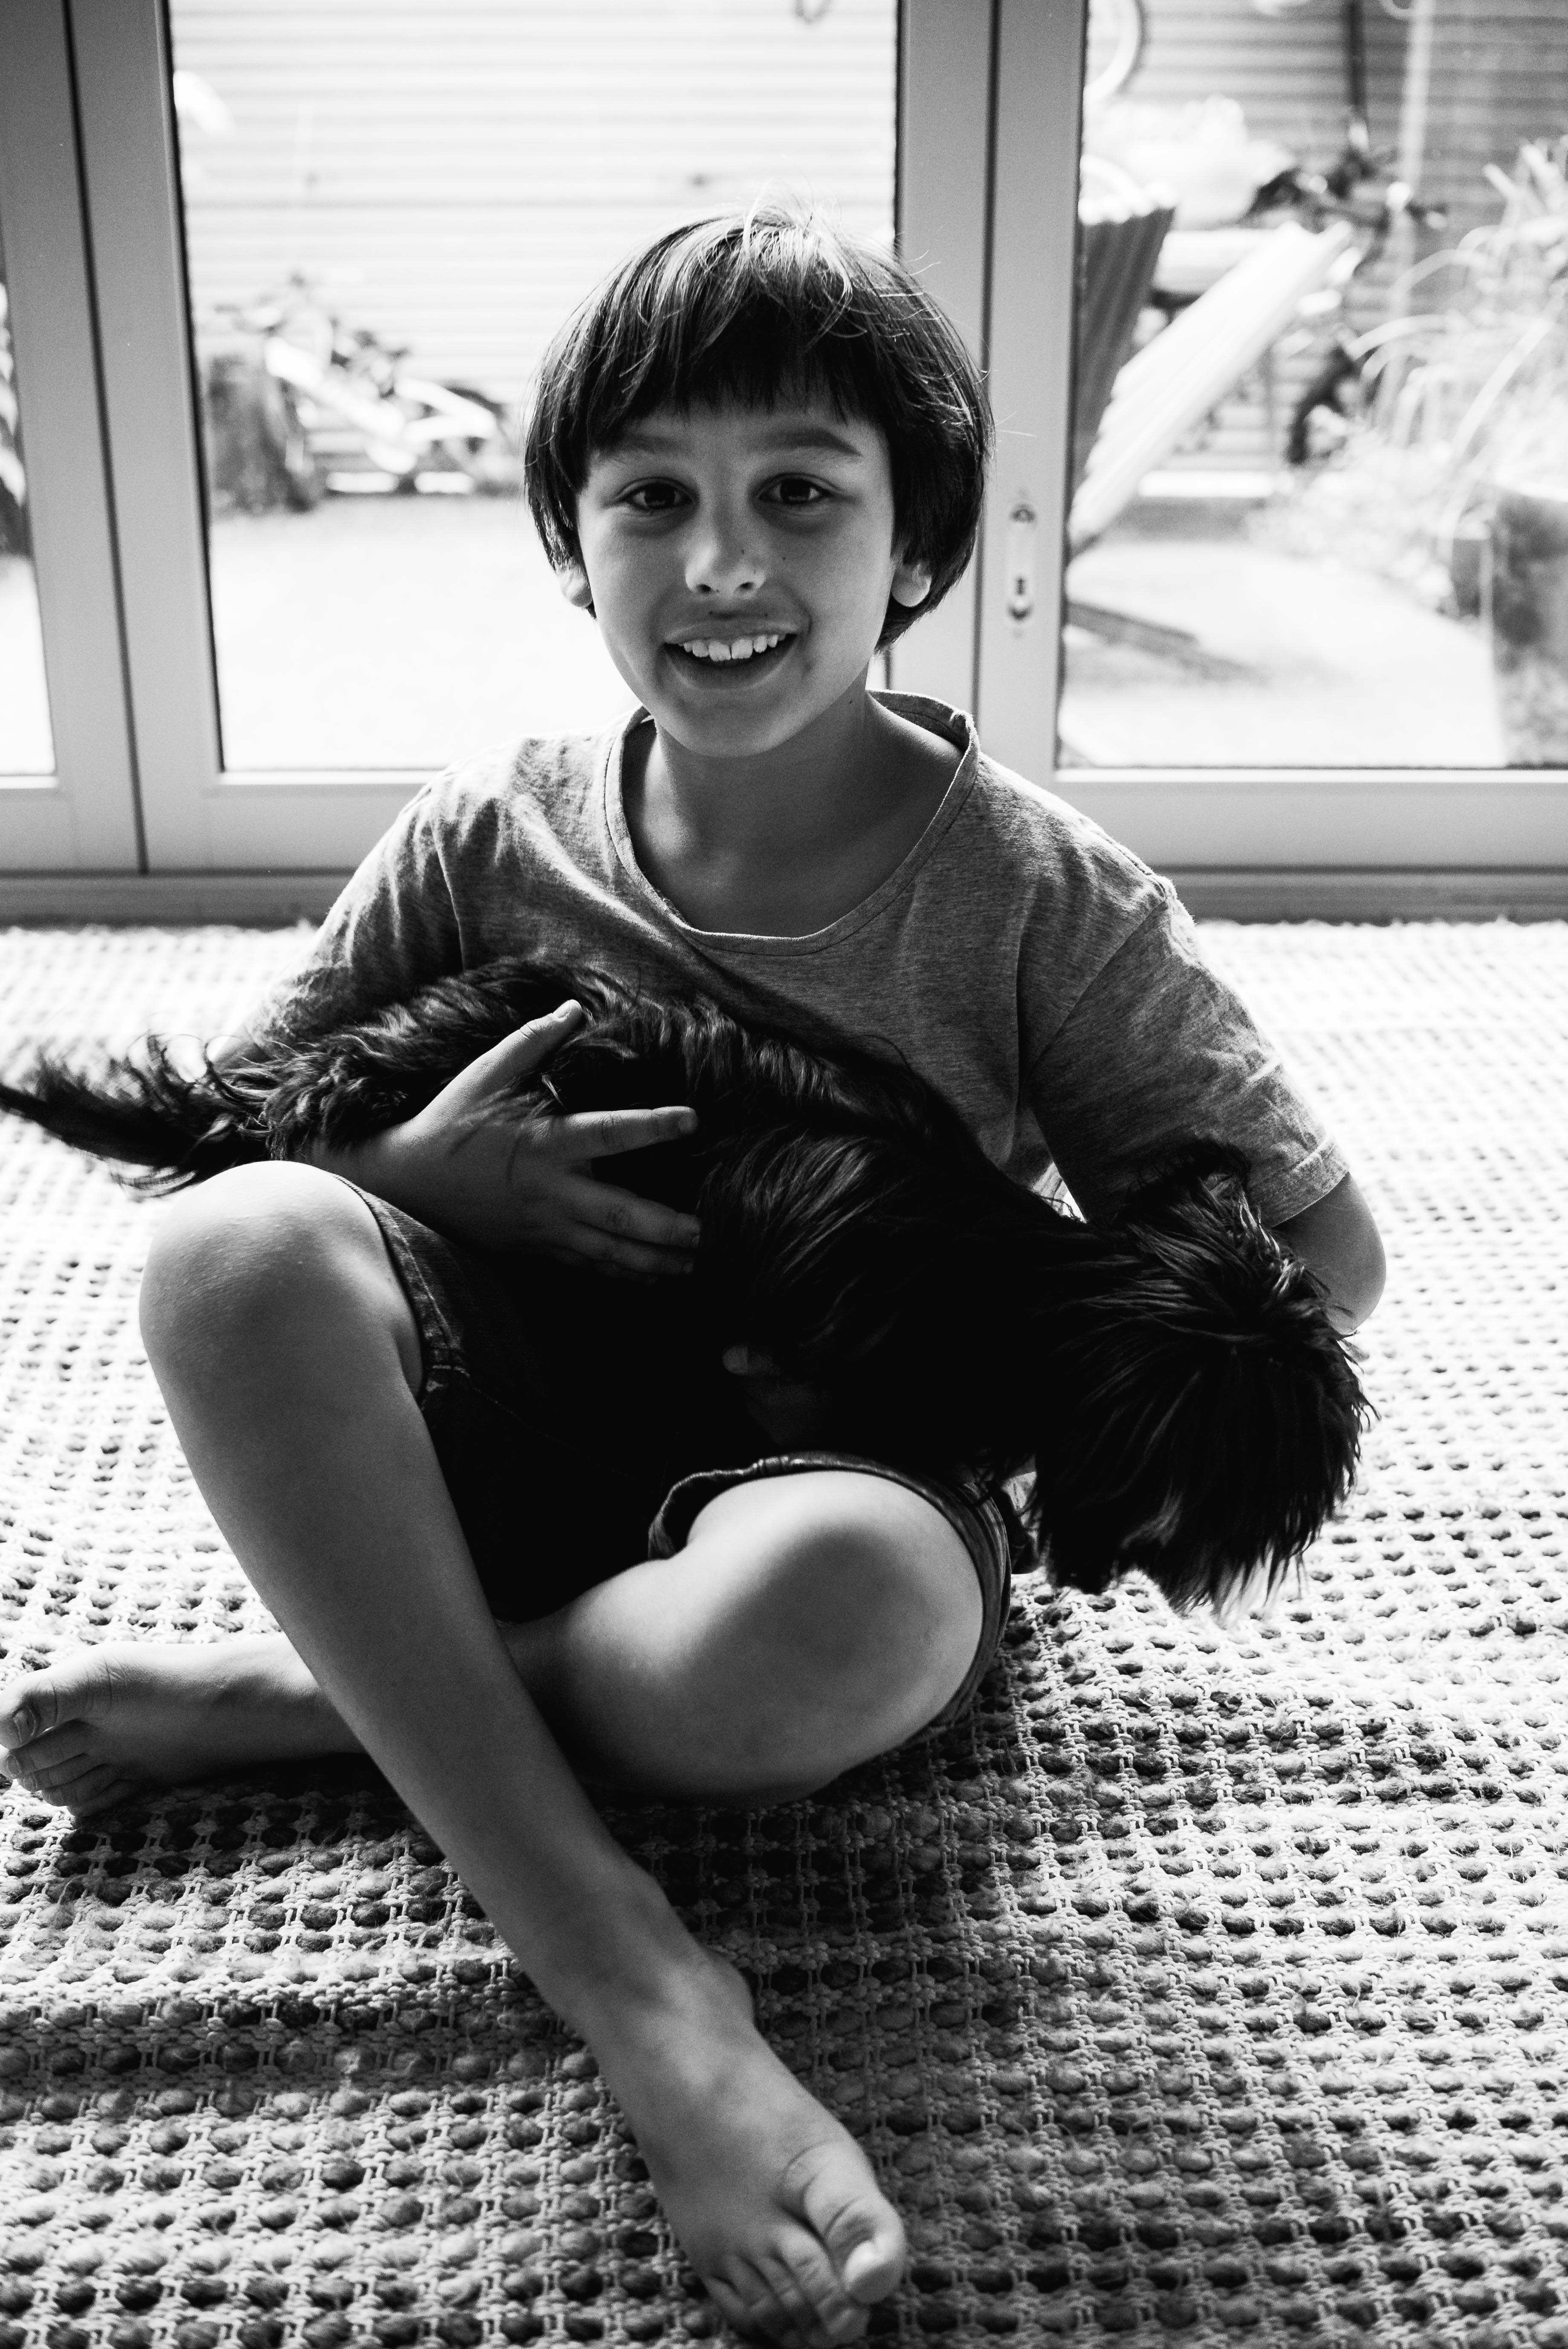 in-home session photograph of a boy and his cute dog cuddling in Carlton North, Melbourne, Australia